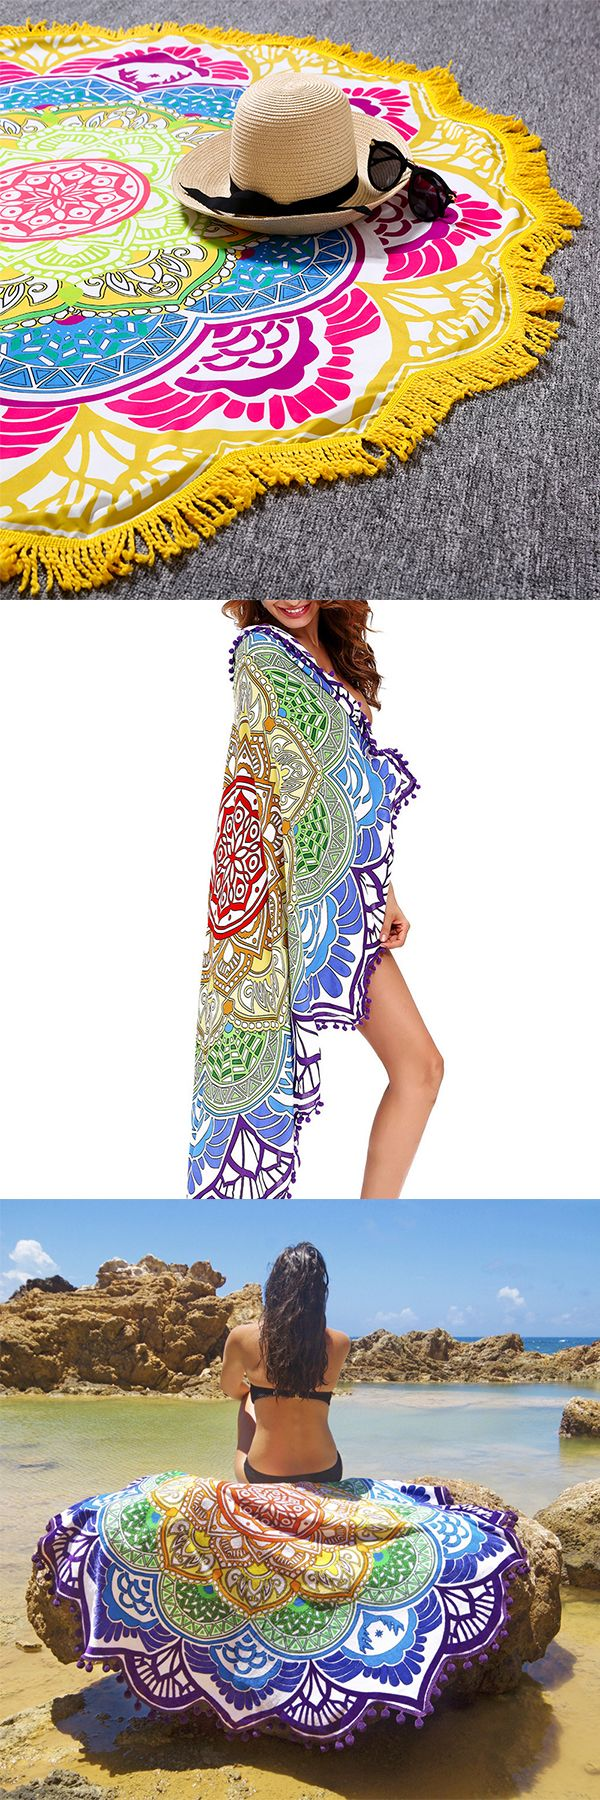 "US$15.99 + Free shipping. Bohemian Tapestry Lotus Beach Towels Yoga Mat Camping Mattress Bikini Cover.Size: 150cm x 150cm / 59.05"" Material: Polyester. 9 styles for your choice. It also can be a tapestry wall hanging, yoga mat, tablecloth, blanket, bedspreads, camping mattress and bikini cover."